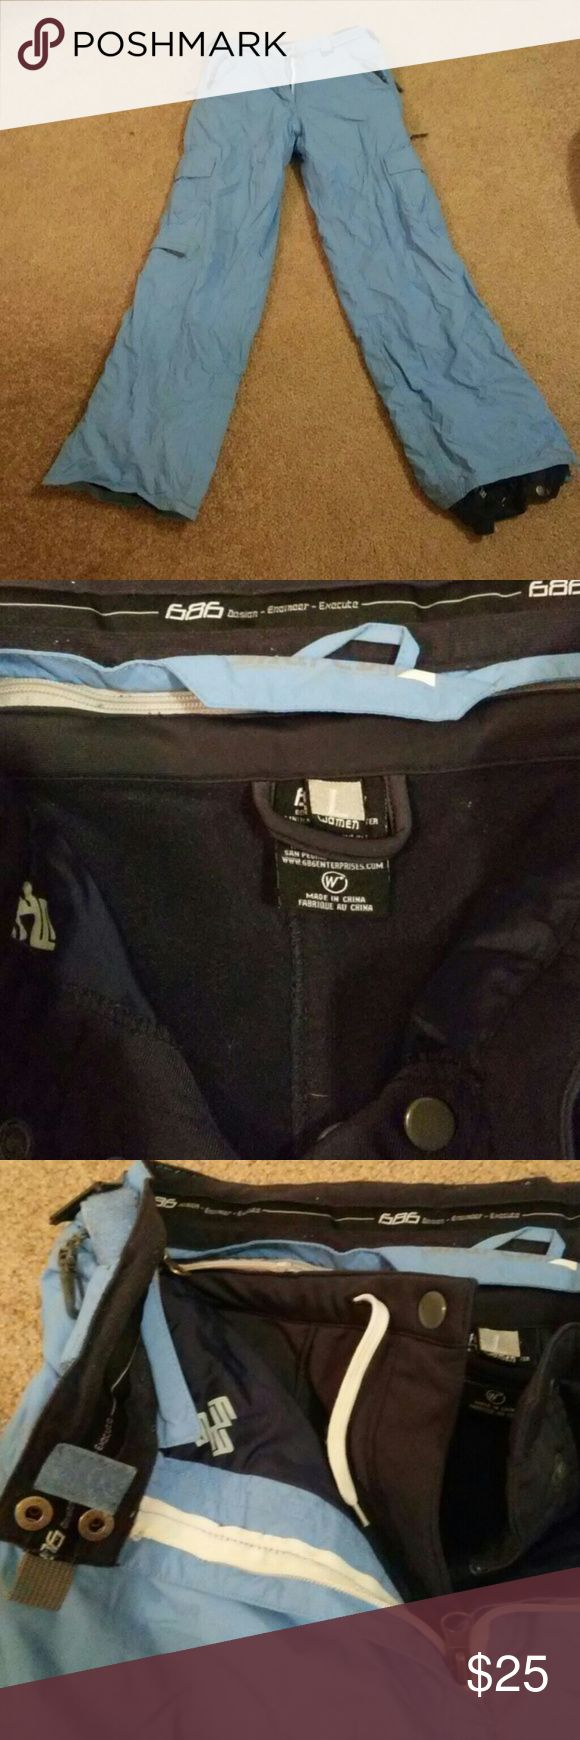 686 snowboard pants size L 686 snowboarding pants. Blue size large. These have been worn a lot and have a few defects to the bottoms where the binding meet the pants. Shown in photos. There is an inner layer that's super warm and can be removed. Still in excellent condition! Pants